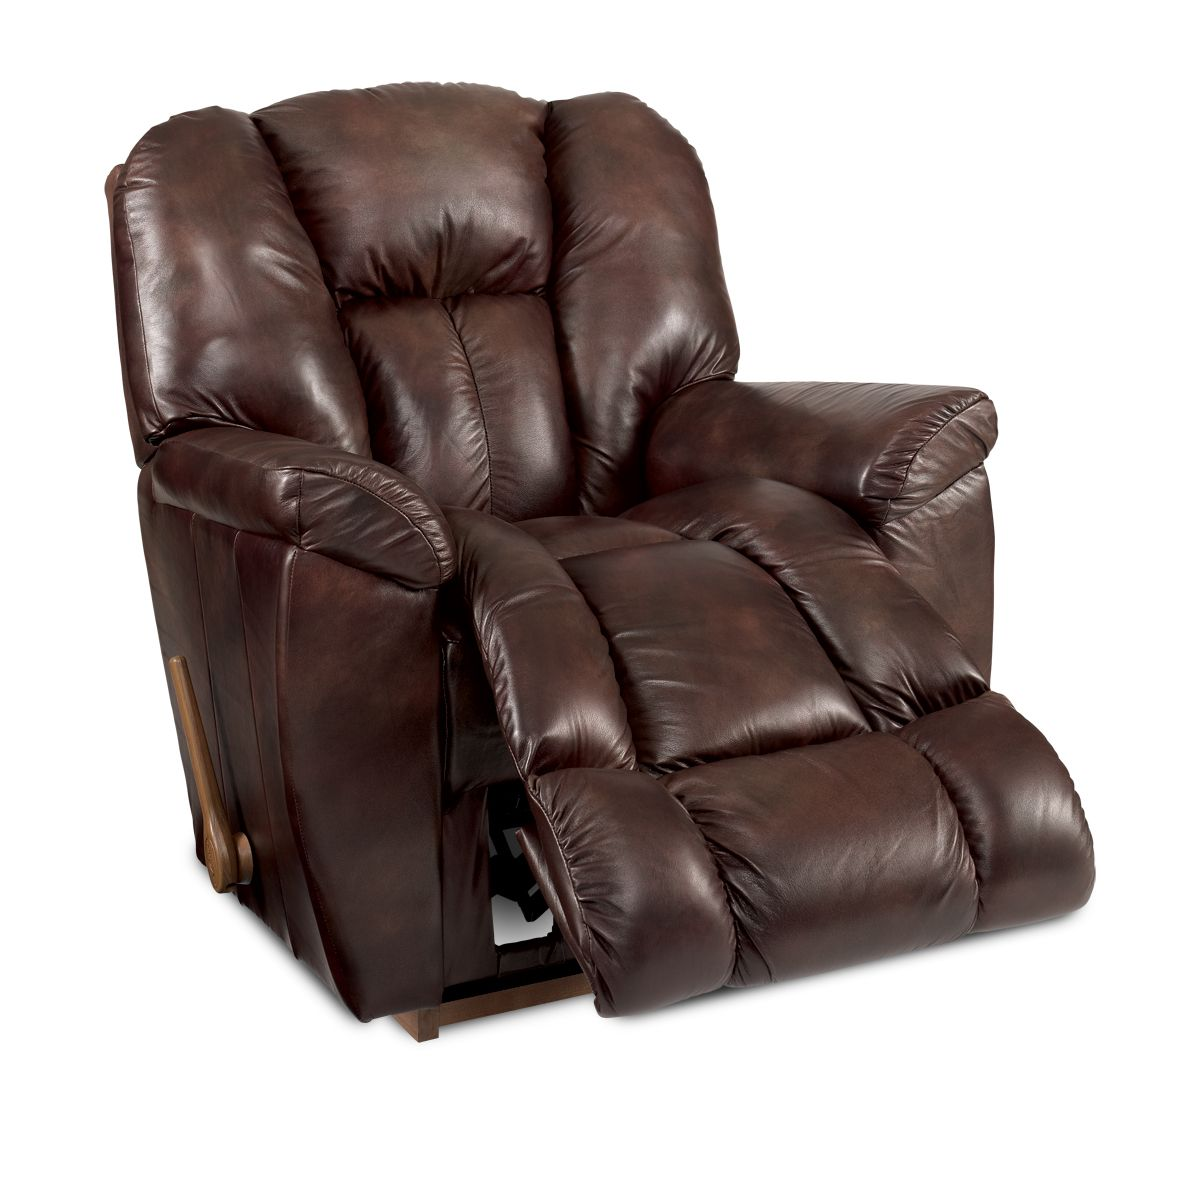 12+ Lazy boy recliners leather ideas